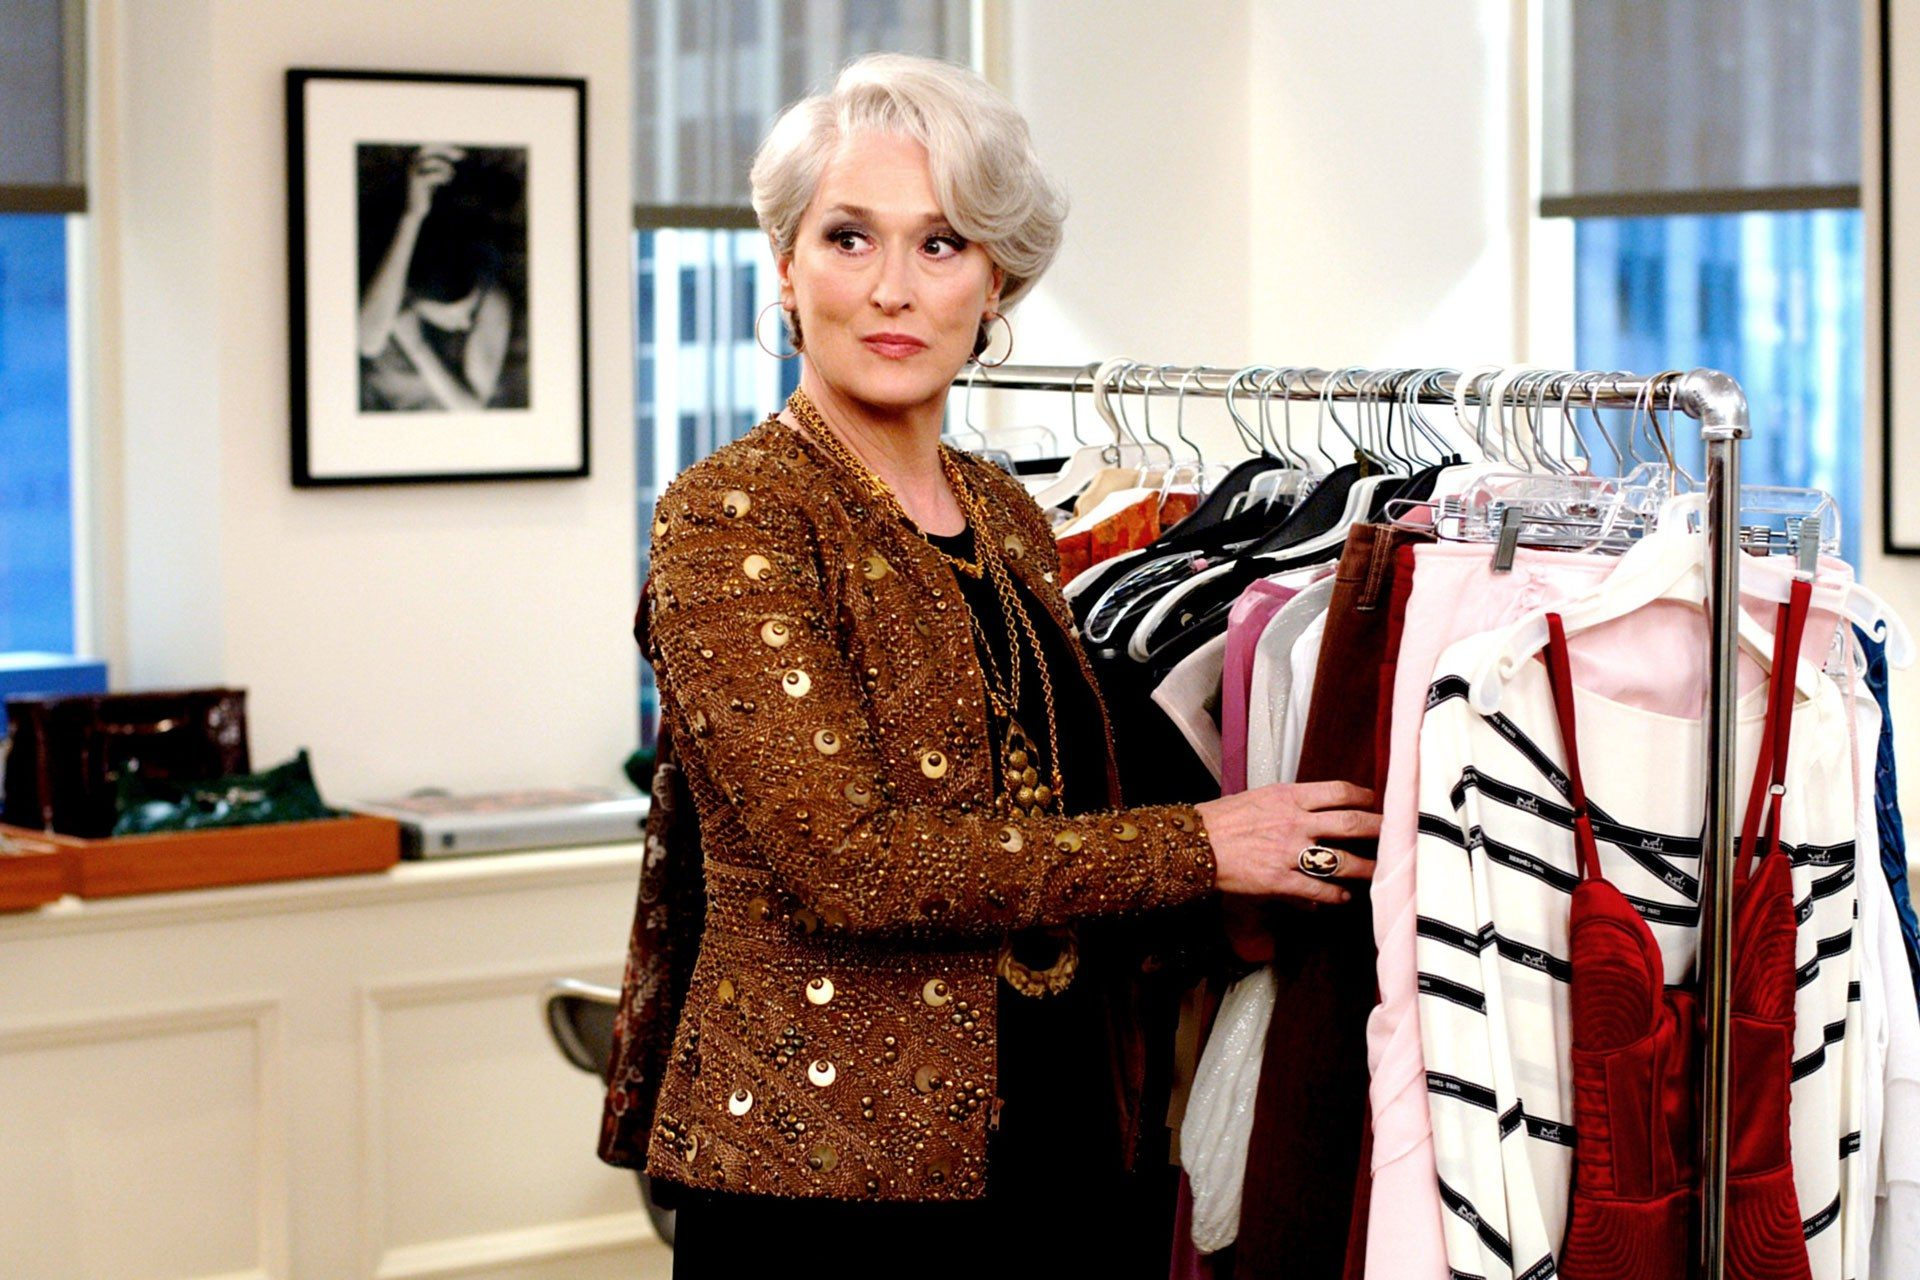 Devil-Wears-Prada-5-Vogue-12May15-Rex_b-1